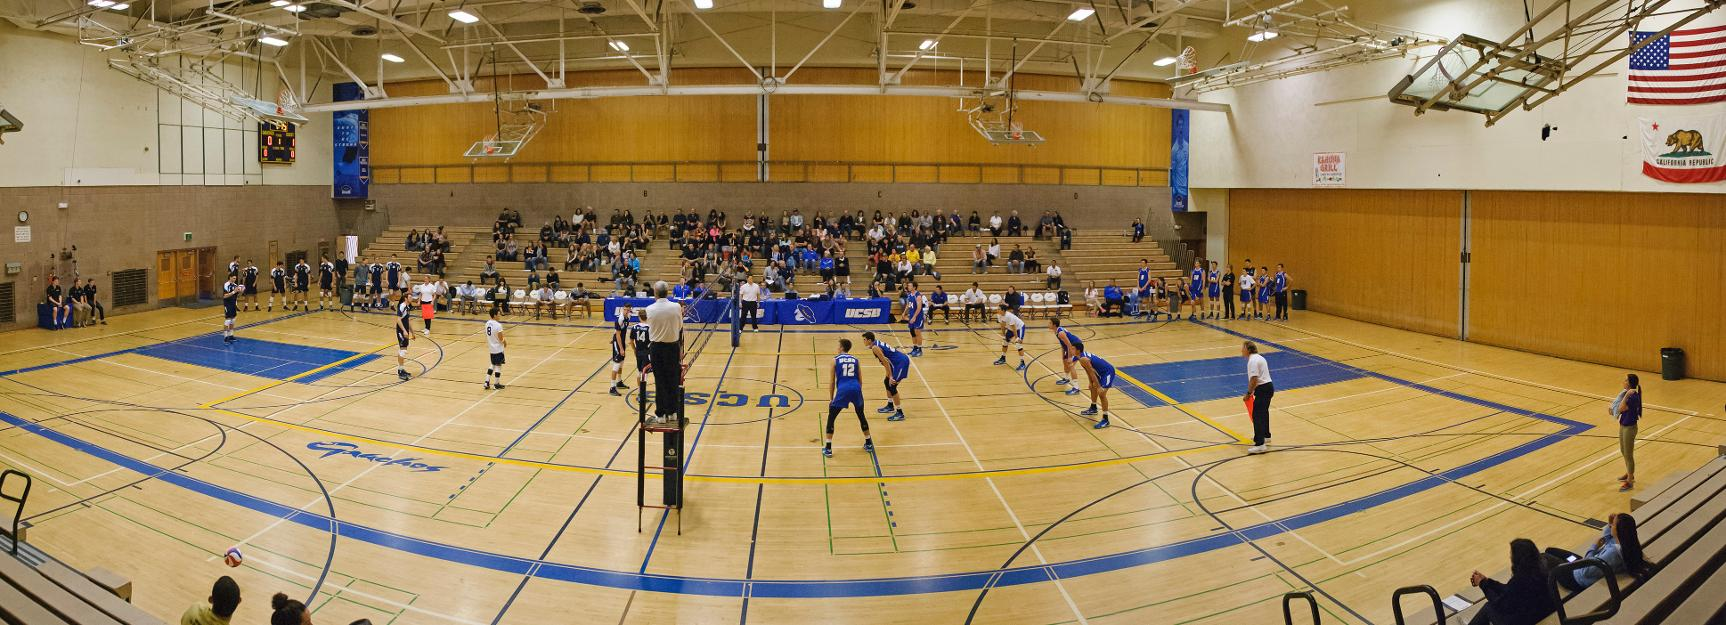 UCSB Athletics to Distribute Student Tickets For Saturday's Men's Volleyball Playoff Match